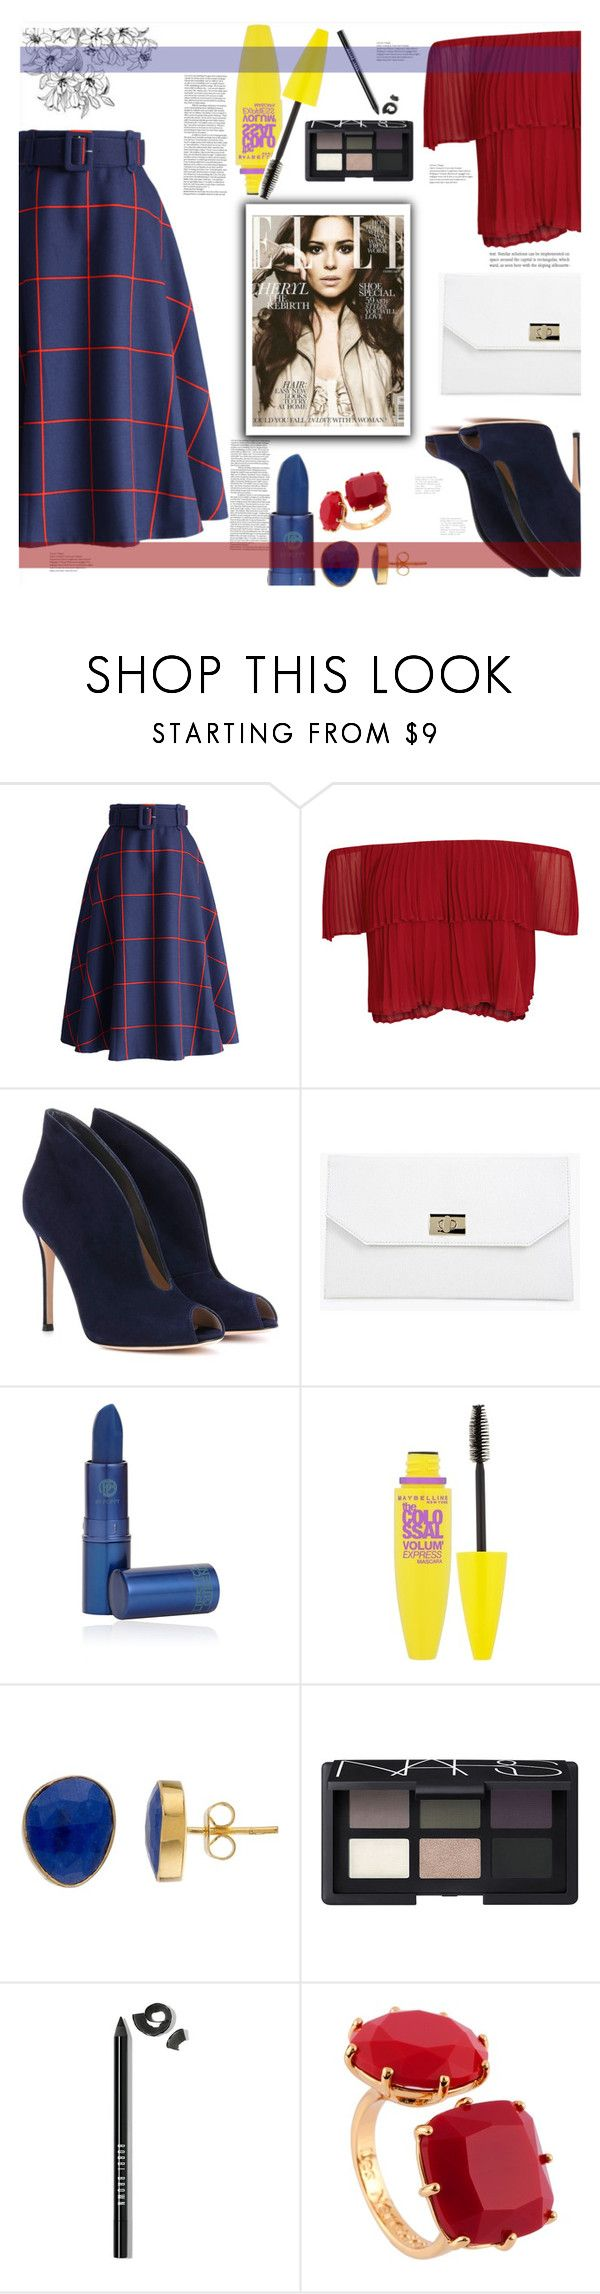 """""""Untitled #196"""" by soranamikaze on Polyvore featuring Chicwish, Keepsake the Label, Gianvito Rossi, Boohoo, Lipstick Queen, Maybelline, NARS Cosmetics, Bobbi Brown Cosmetics and Les Néréides"""